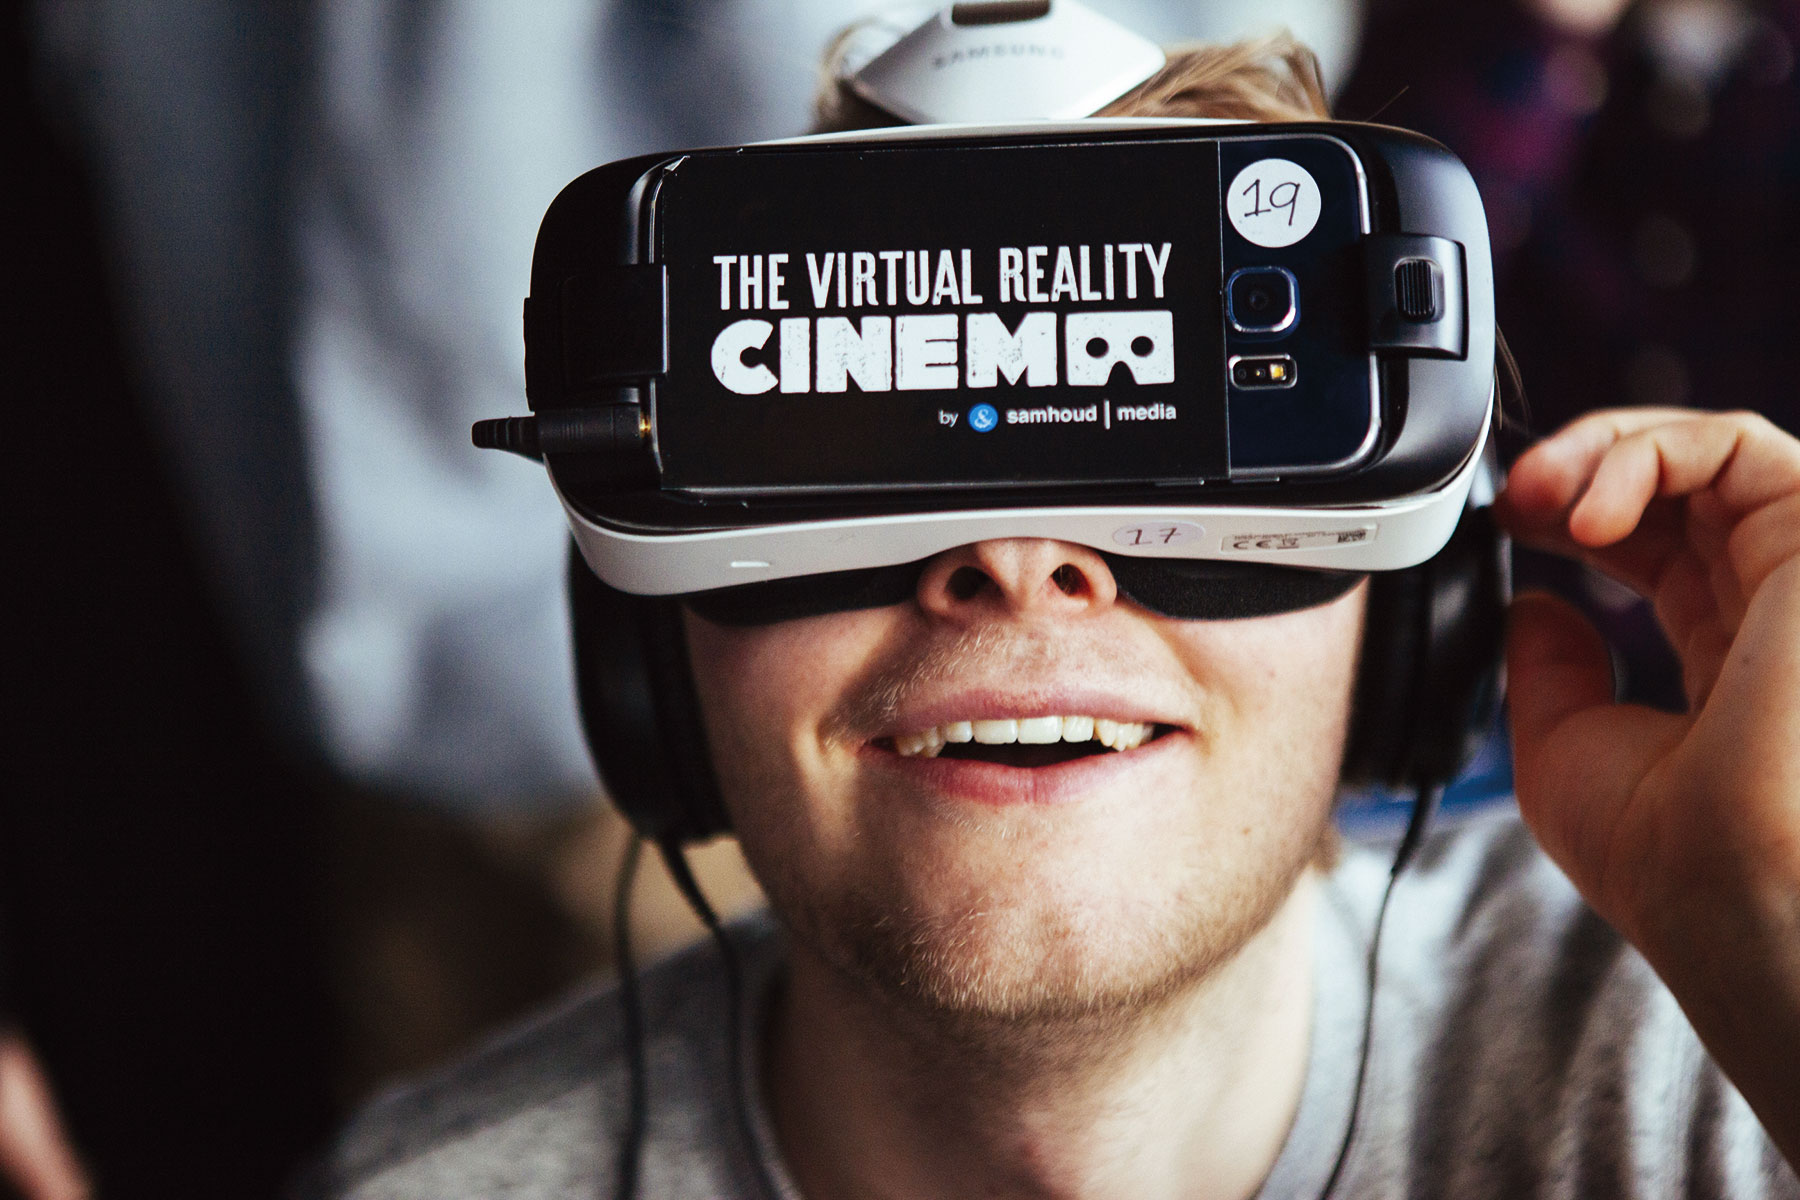 Kino ganz anders mit Virtual Reality